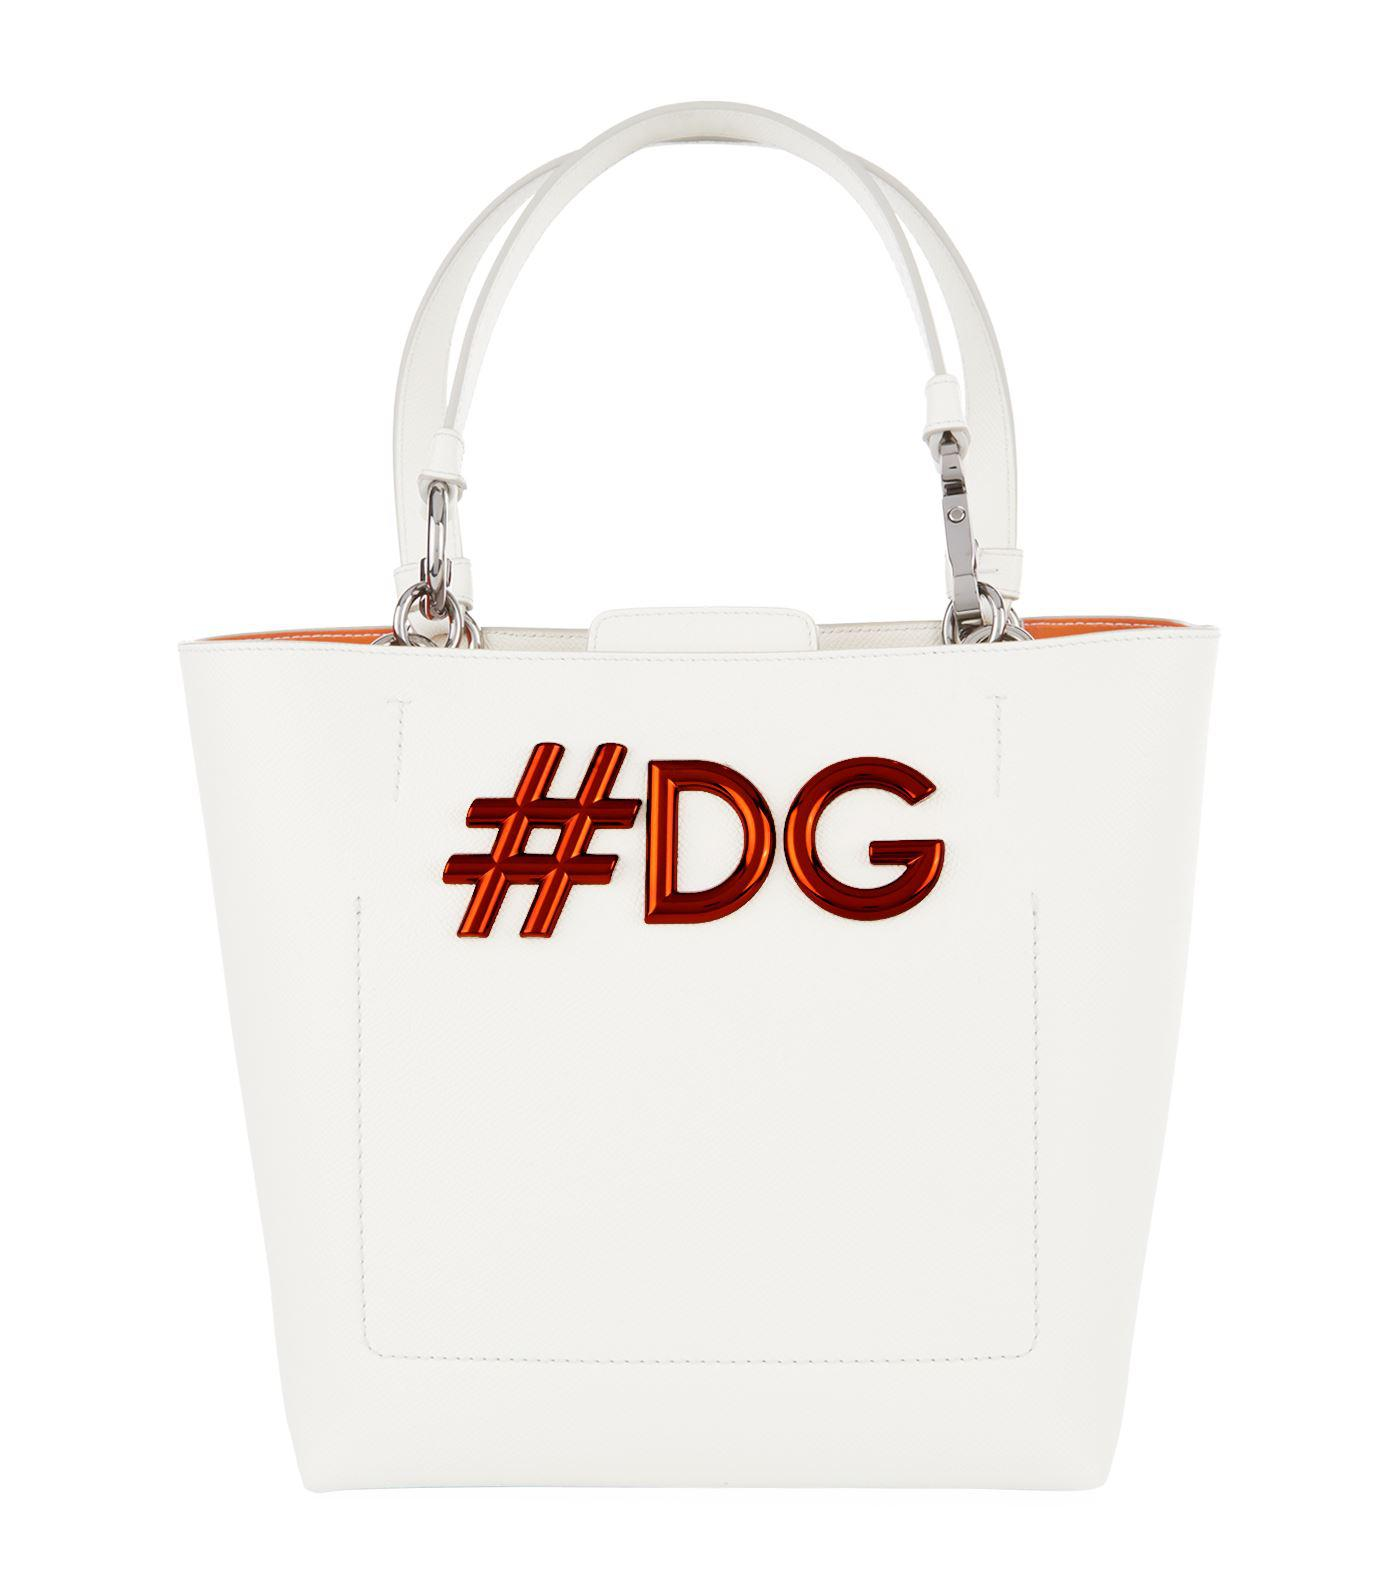 Lyst - Dolce   Gabbana Small Leather Beatrice Tote Bag, White in White 8dedf60802